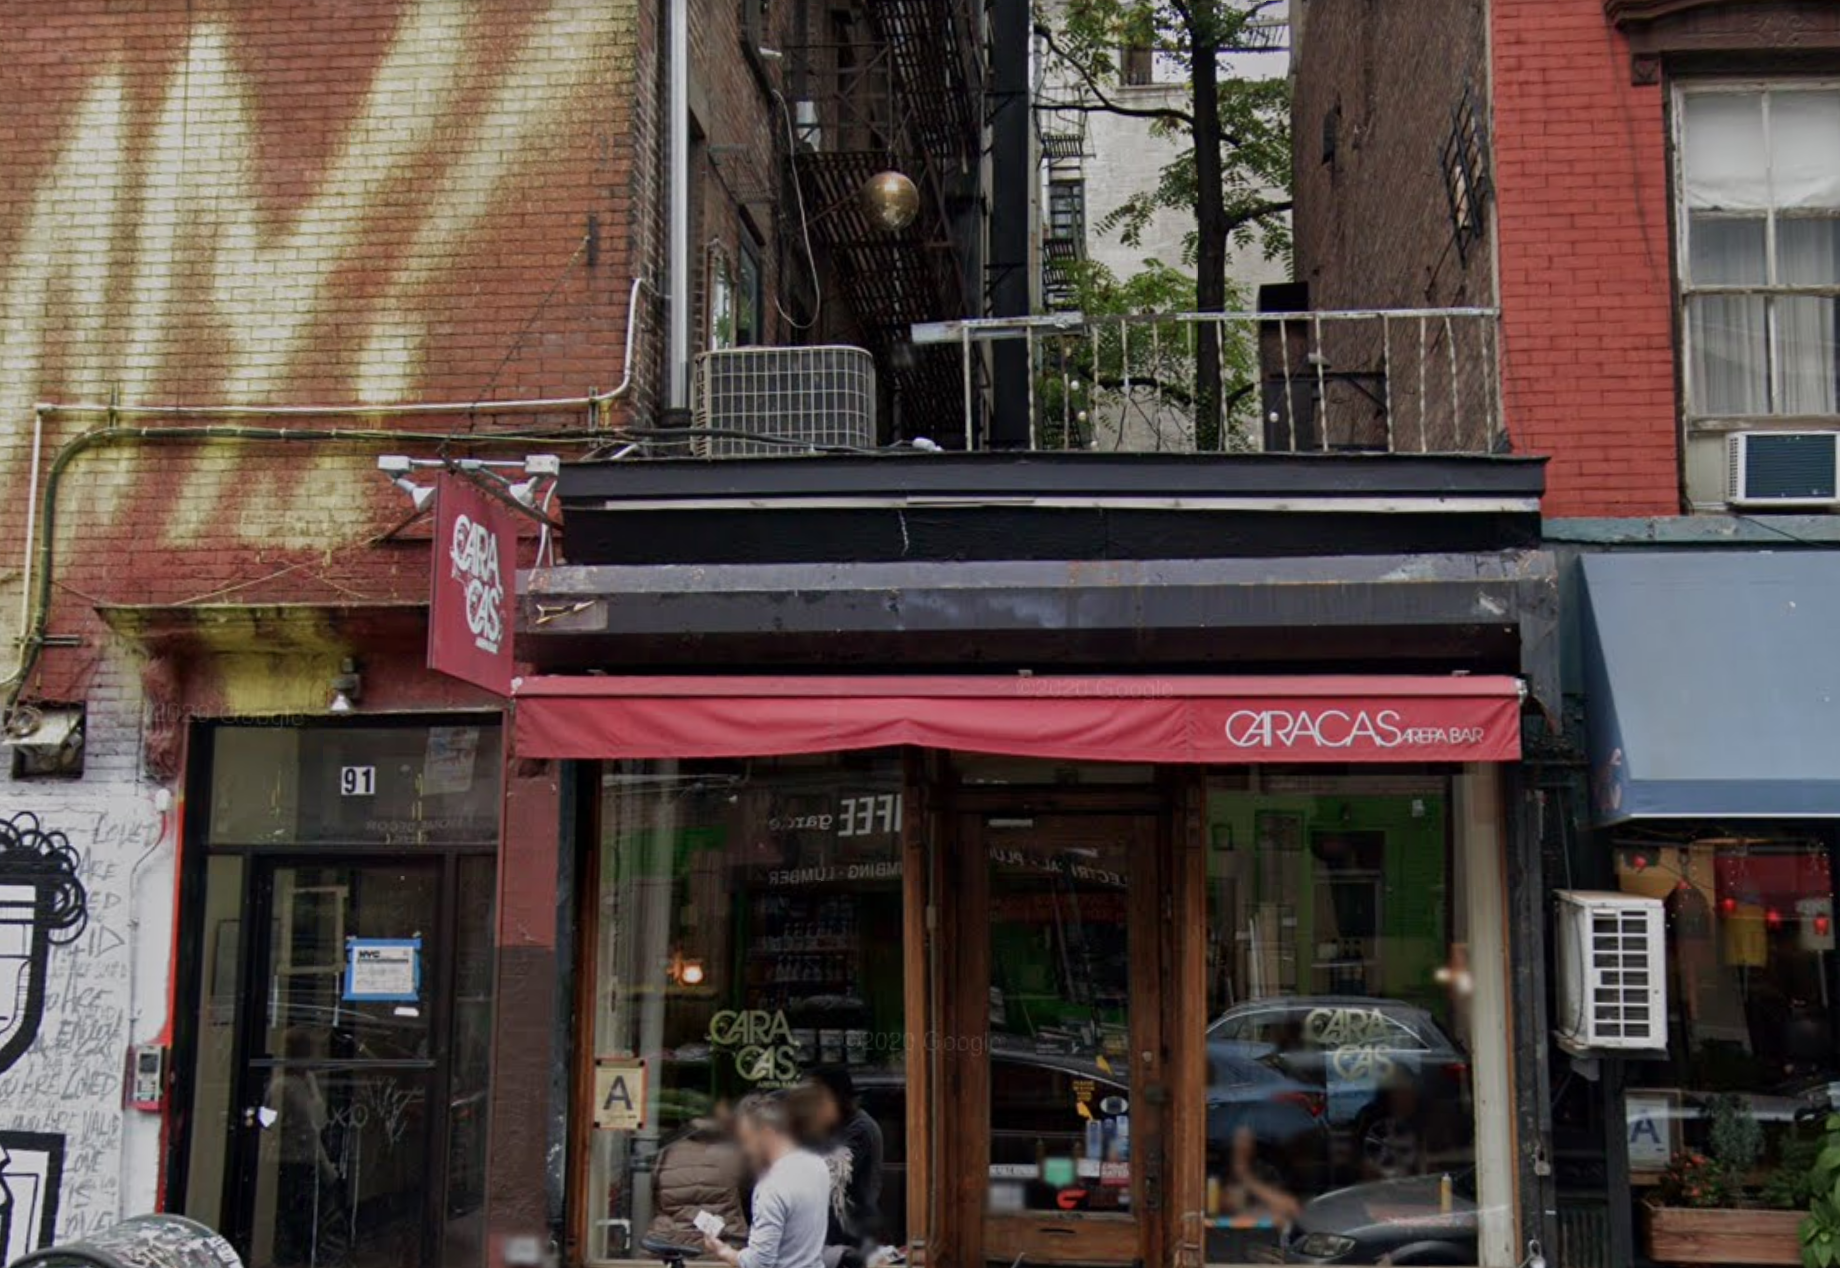 the exterior of a restaurant with a red awning that reads caracas arepa bar